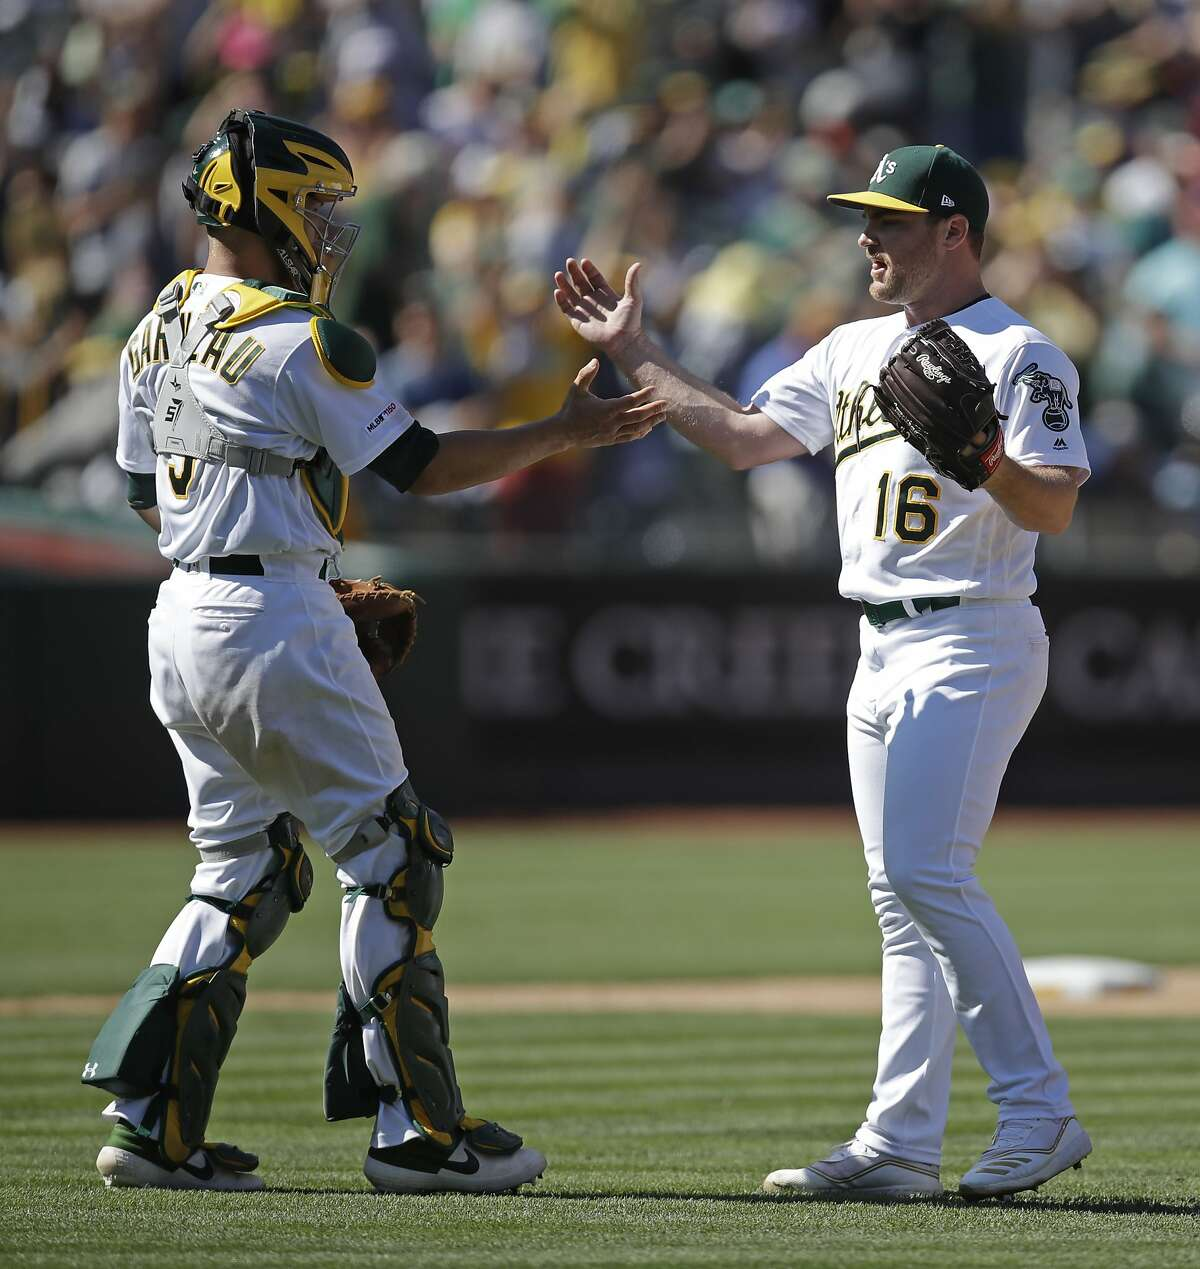 Oakland Athletics pitcher Liam Hendriks, right, and Dustin Garneau celebrate the 4-2 win over the St. Louis Cardinals at the end of a baseball game Sunday, Aug. 4, 2019, in Oakland, Calif. (AP Photo/Ben Margot)